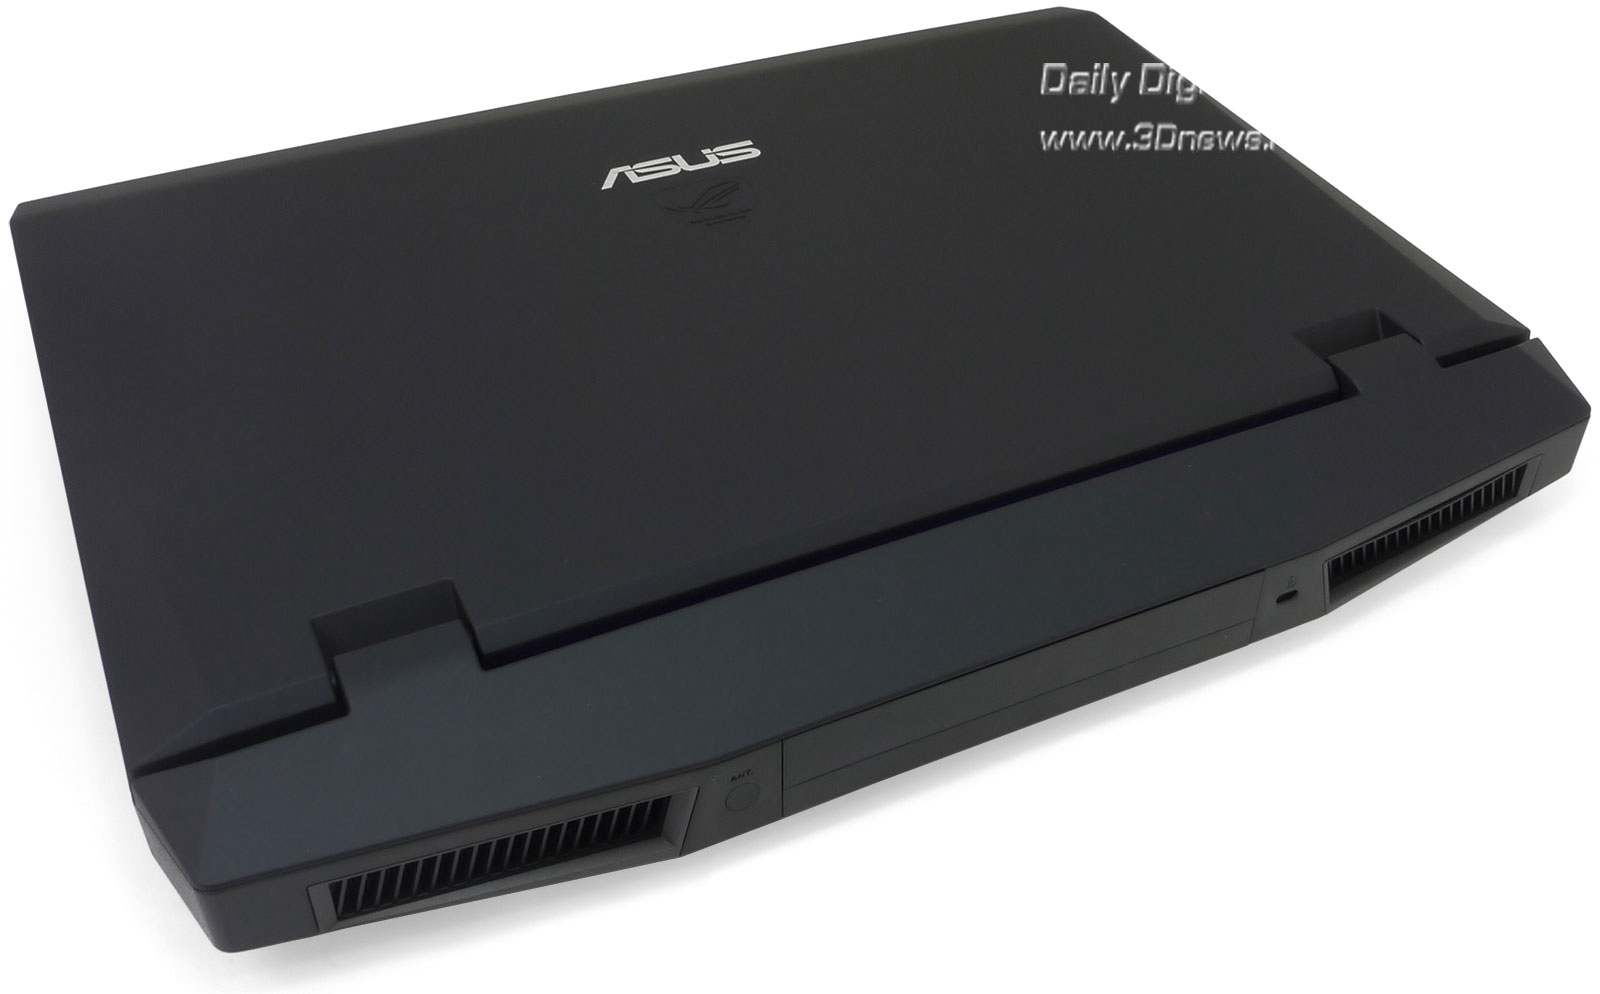 ASUS G73JH-B1 DRIVERS WINDOWS 7